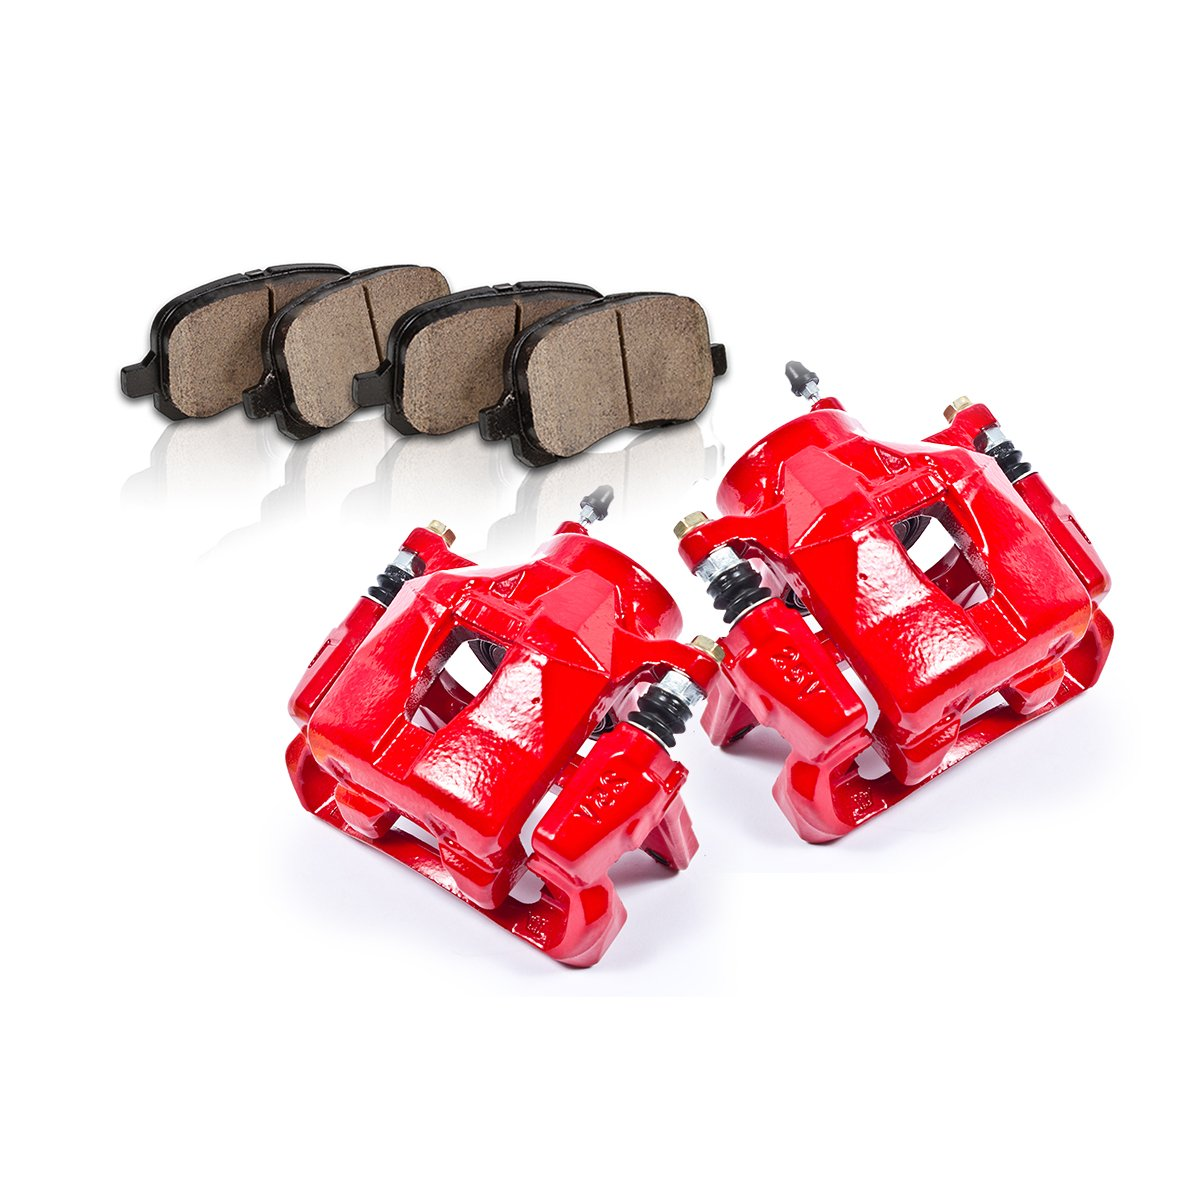 Callahan [ 2 ] FRONT Performance Grade Semi-Loaded Red Caliper Set + Ceramic Brake Pads left clutch brake lever assy and front brake handle bar suit for cf650nk cfmoto parts code is a000 100200 a000 080113